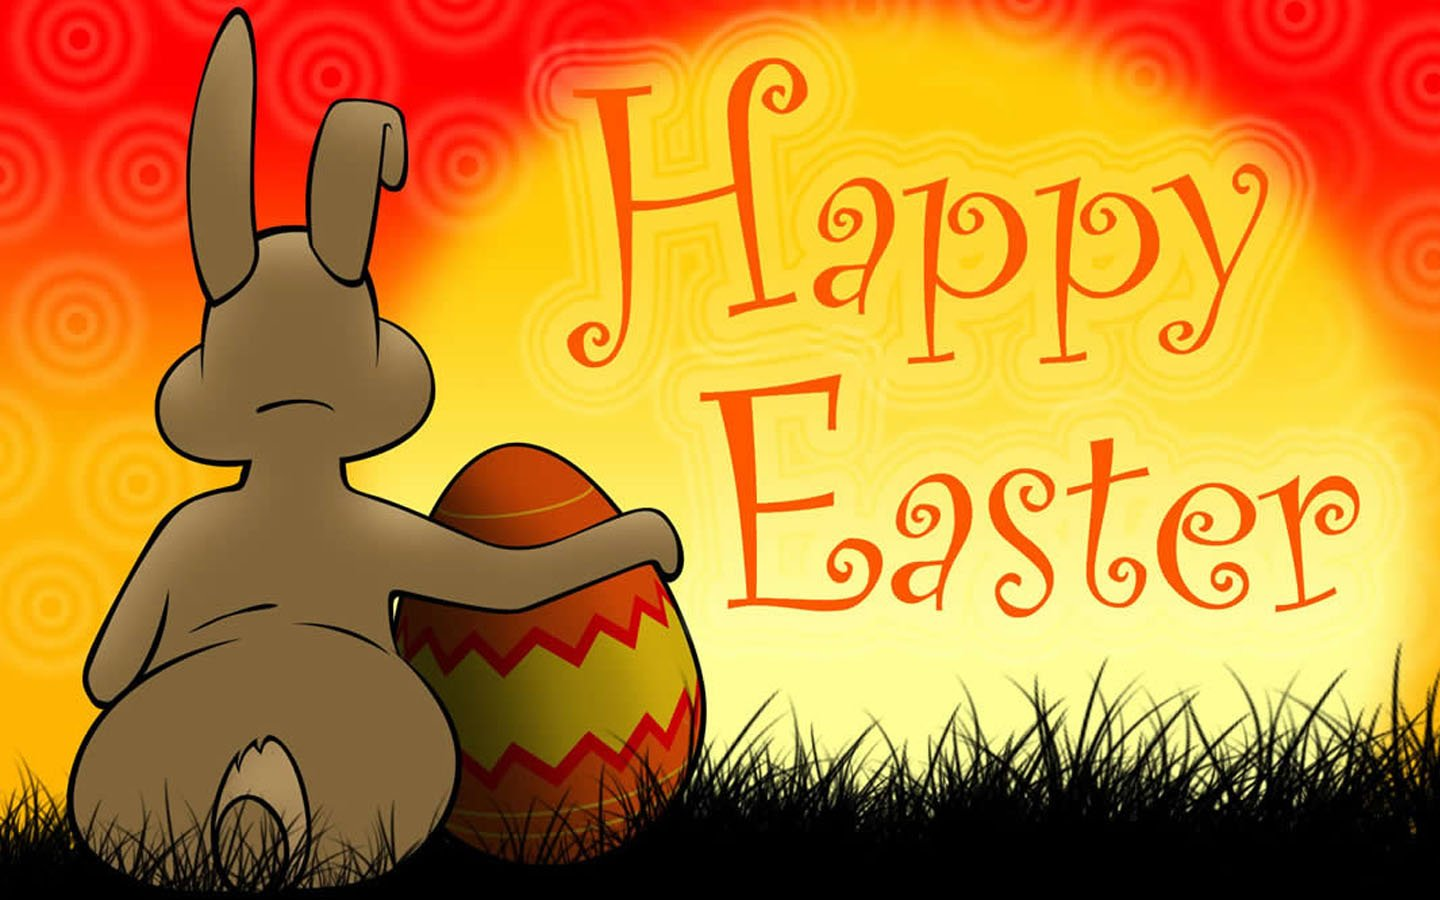 Happy Easter Day wallpaper Wallpapers   HD Wallpapers 90656 1440x900